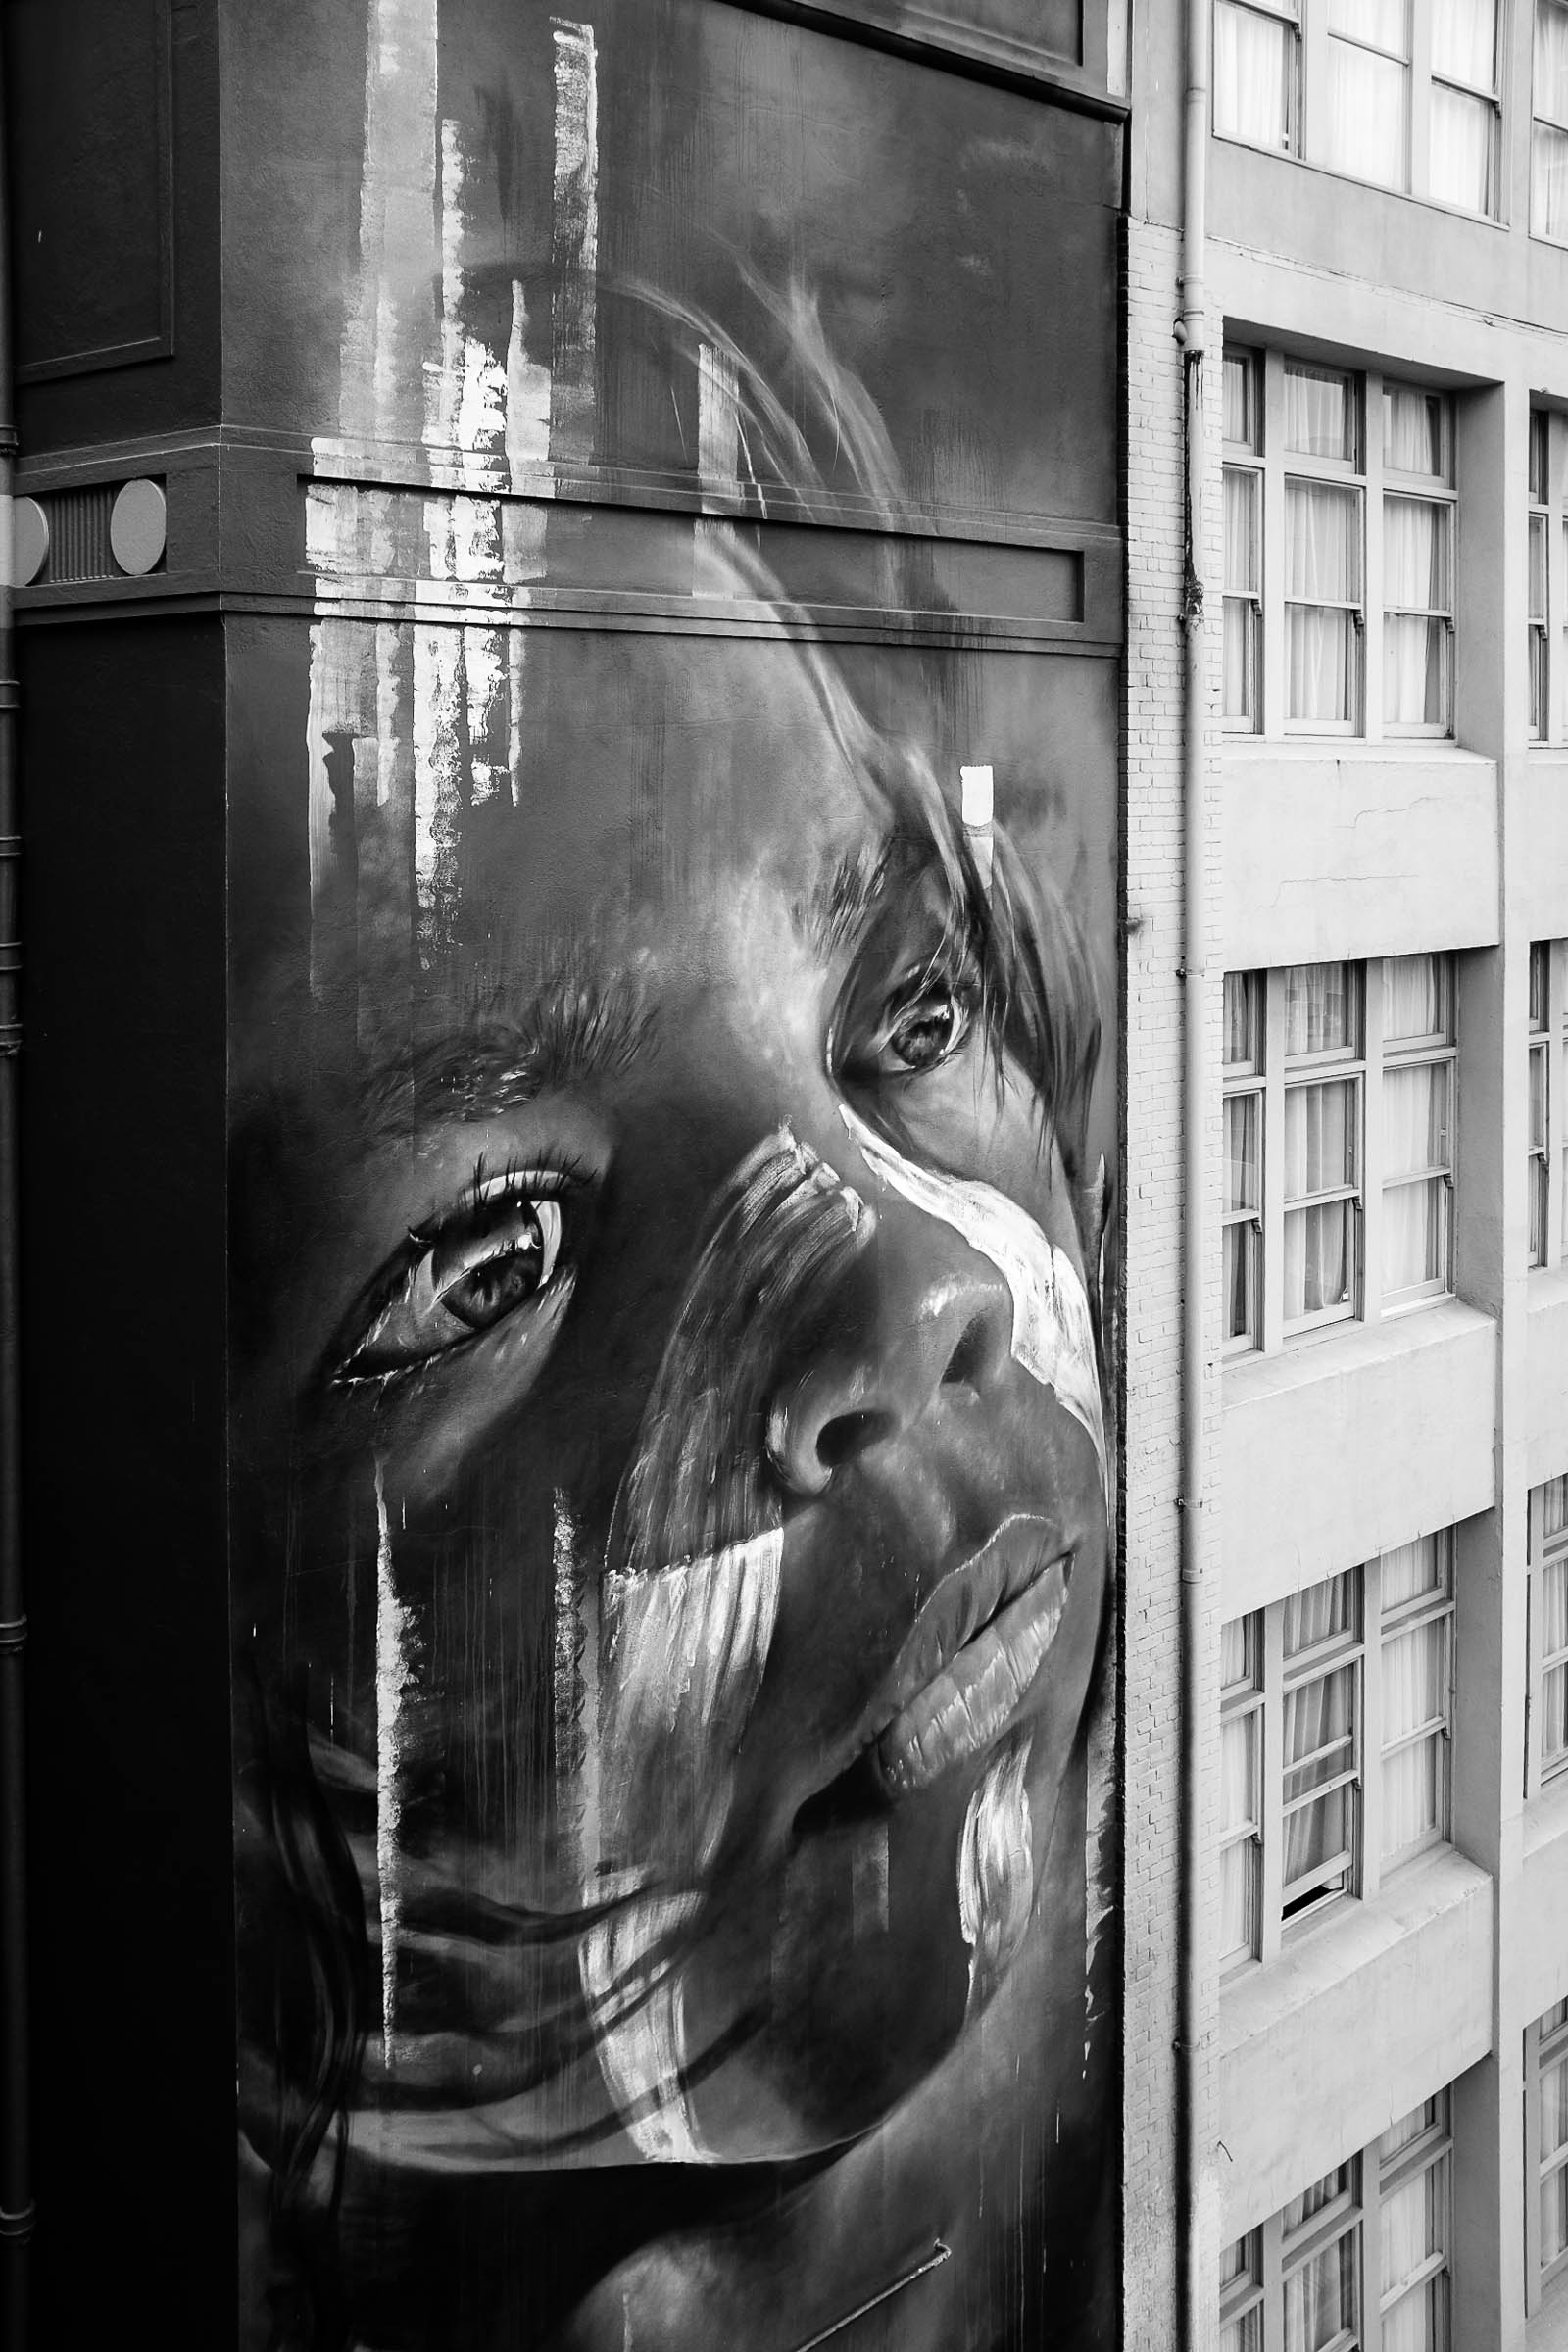 PoW #8: Indigenous boy by Adnate on Hosier Lane